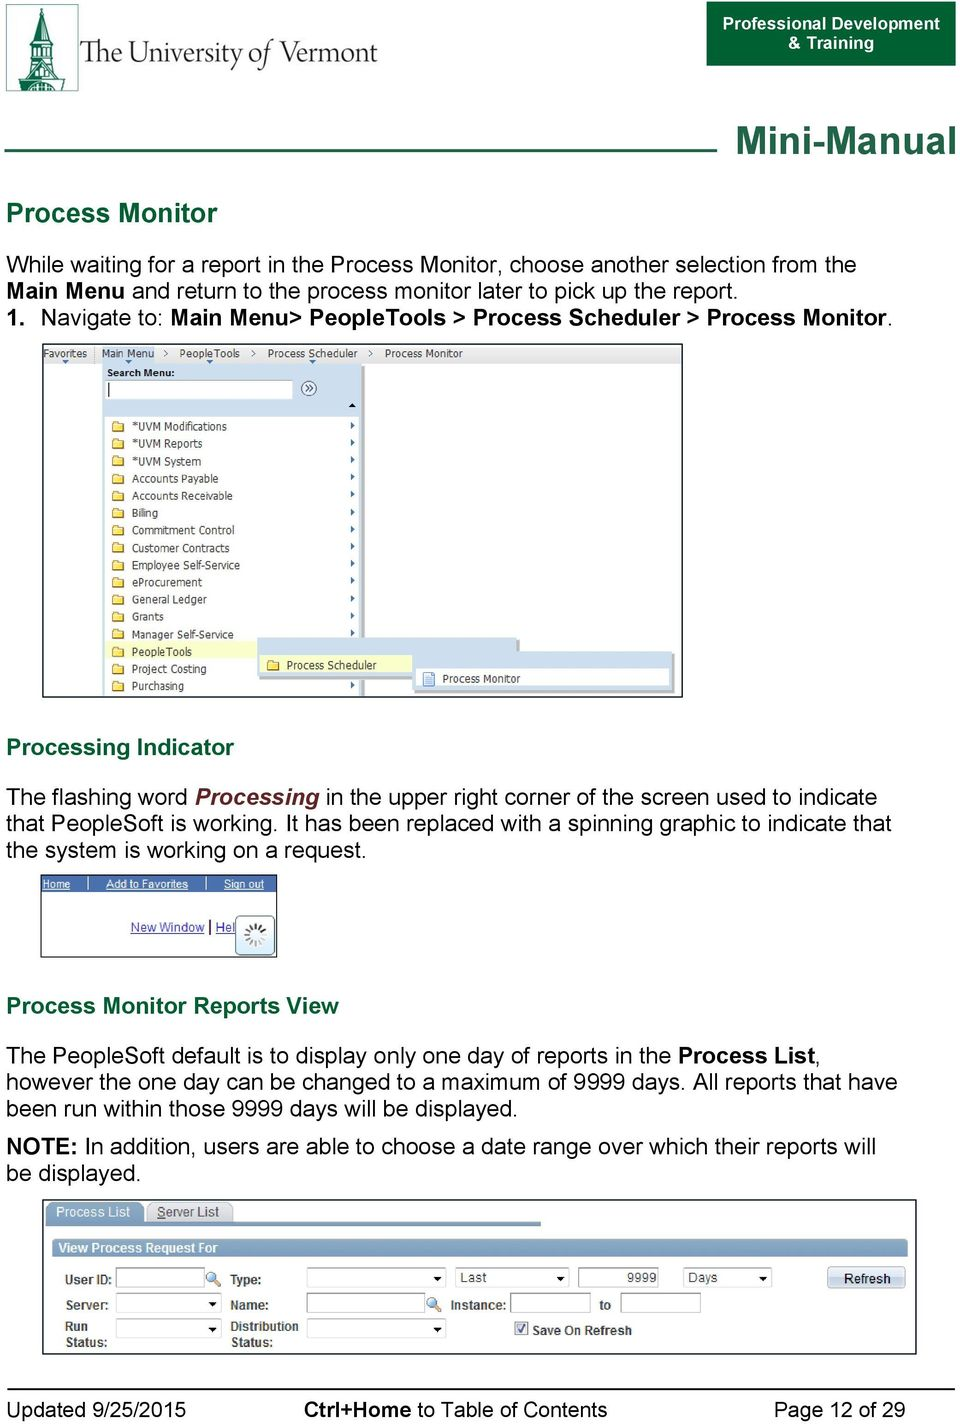 Processing Indicator The flashing word Processing in the upper right corner  of the screen used to